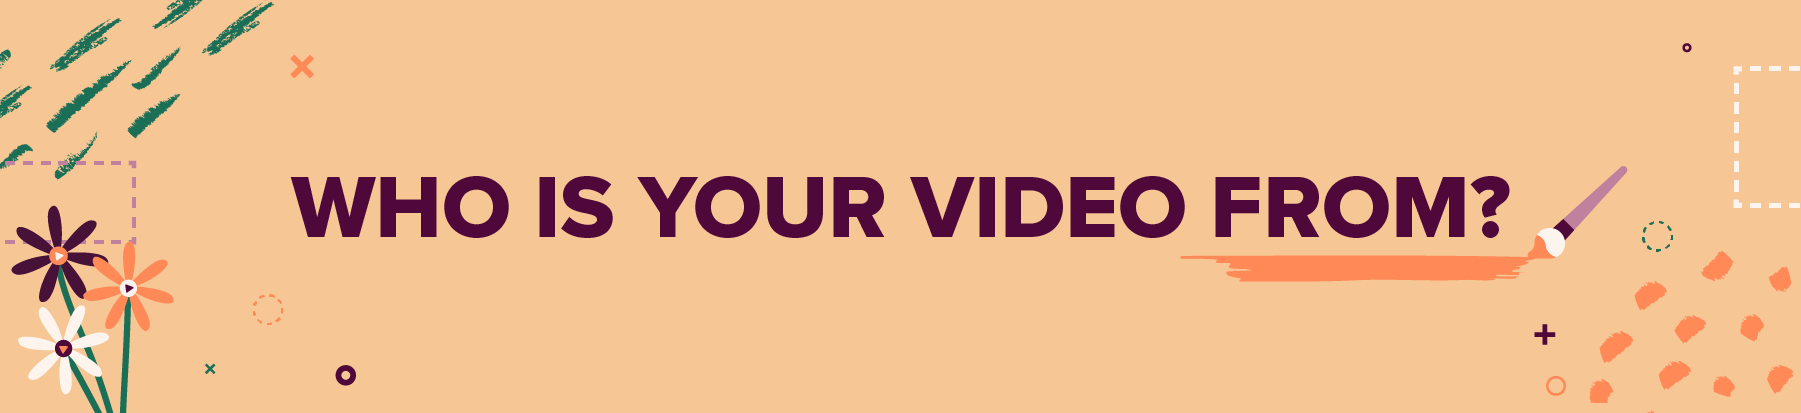 2021-04 Personalized-MothersDay-Video-Gift Blog who-is-your-video-from